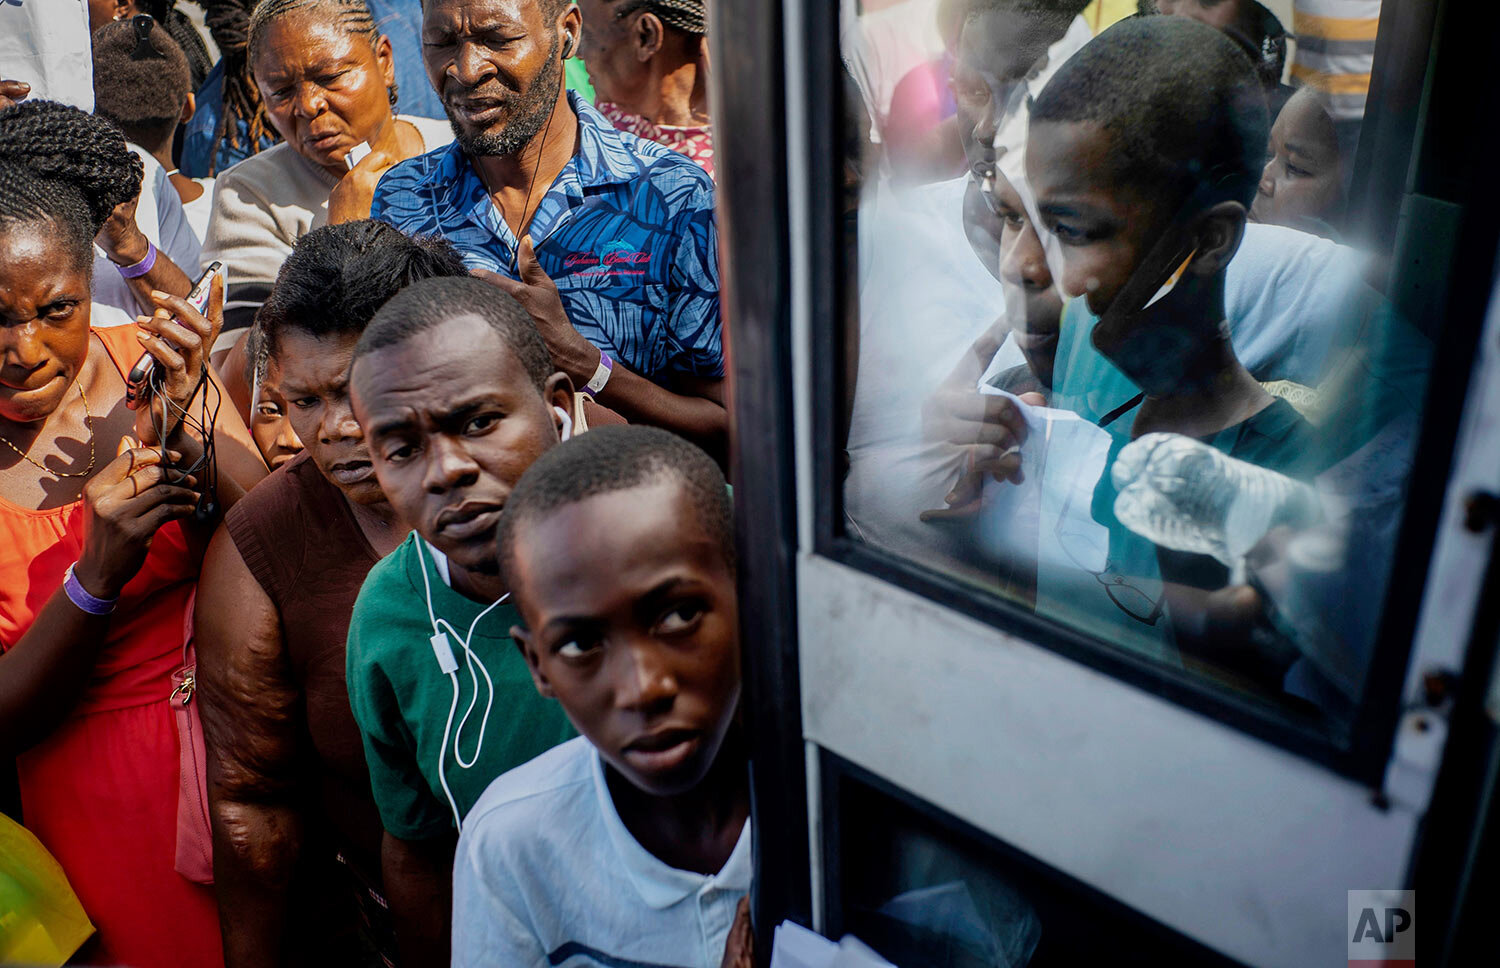 Haitian migrants displaced from their homes destroyed by Hurricane Dorian at Abaco Island wait to get on a bus to receive aid from humanitarian organizations, in Nassau, Bahamas, Sunday, Sept. 29, 2019. A preliminary report estimates Dorian caused some $7 billion in damage, but the government has not yet offered any figures. (AP Photo/Ramon Espinosa)